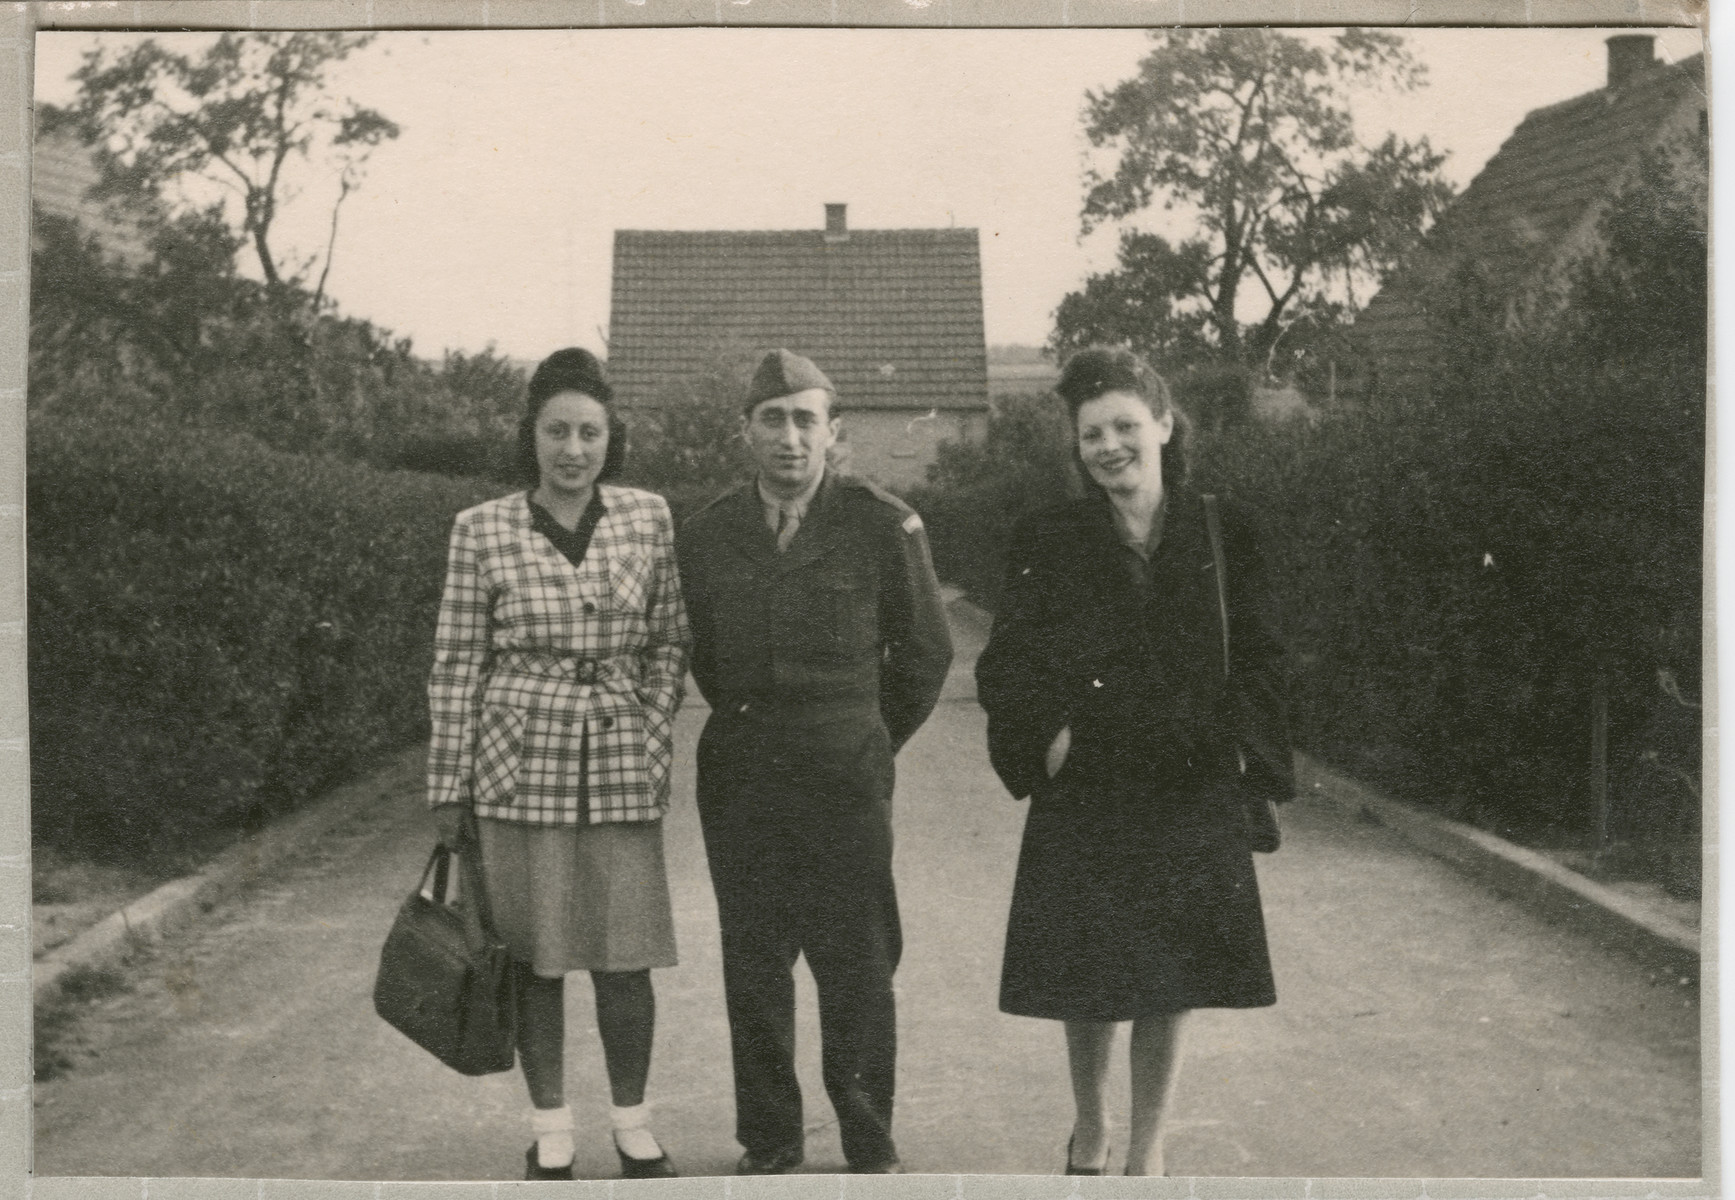 Three Jewish DPs stand on a street iin the Lampertheim displaced persons camp.    From left to right are Hanka Bratman Fisch, her husband Theodore (Tadek) Fisch and Hanna Bratman.